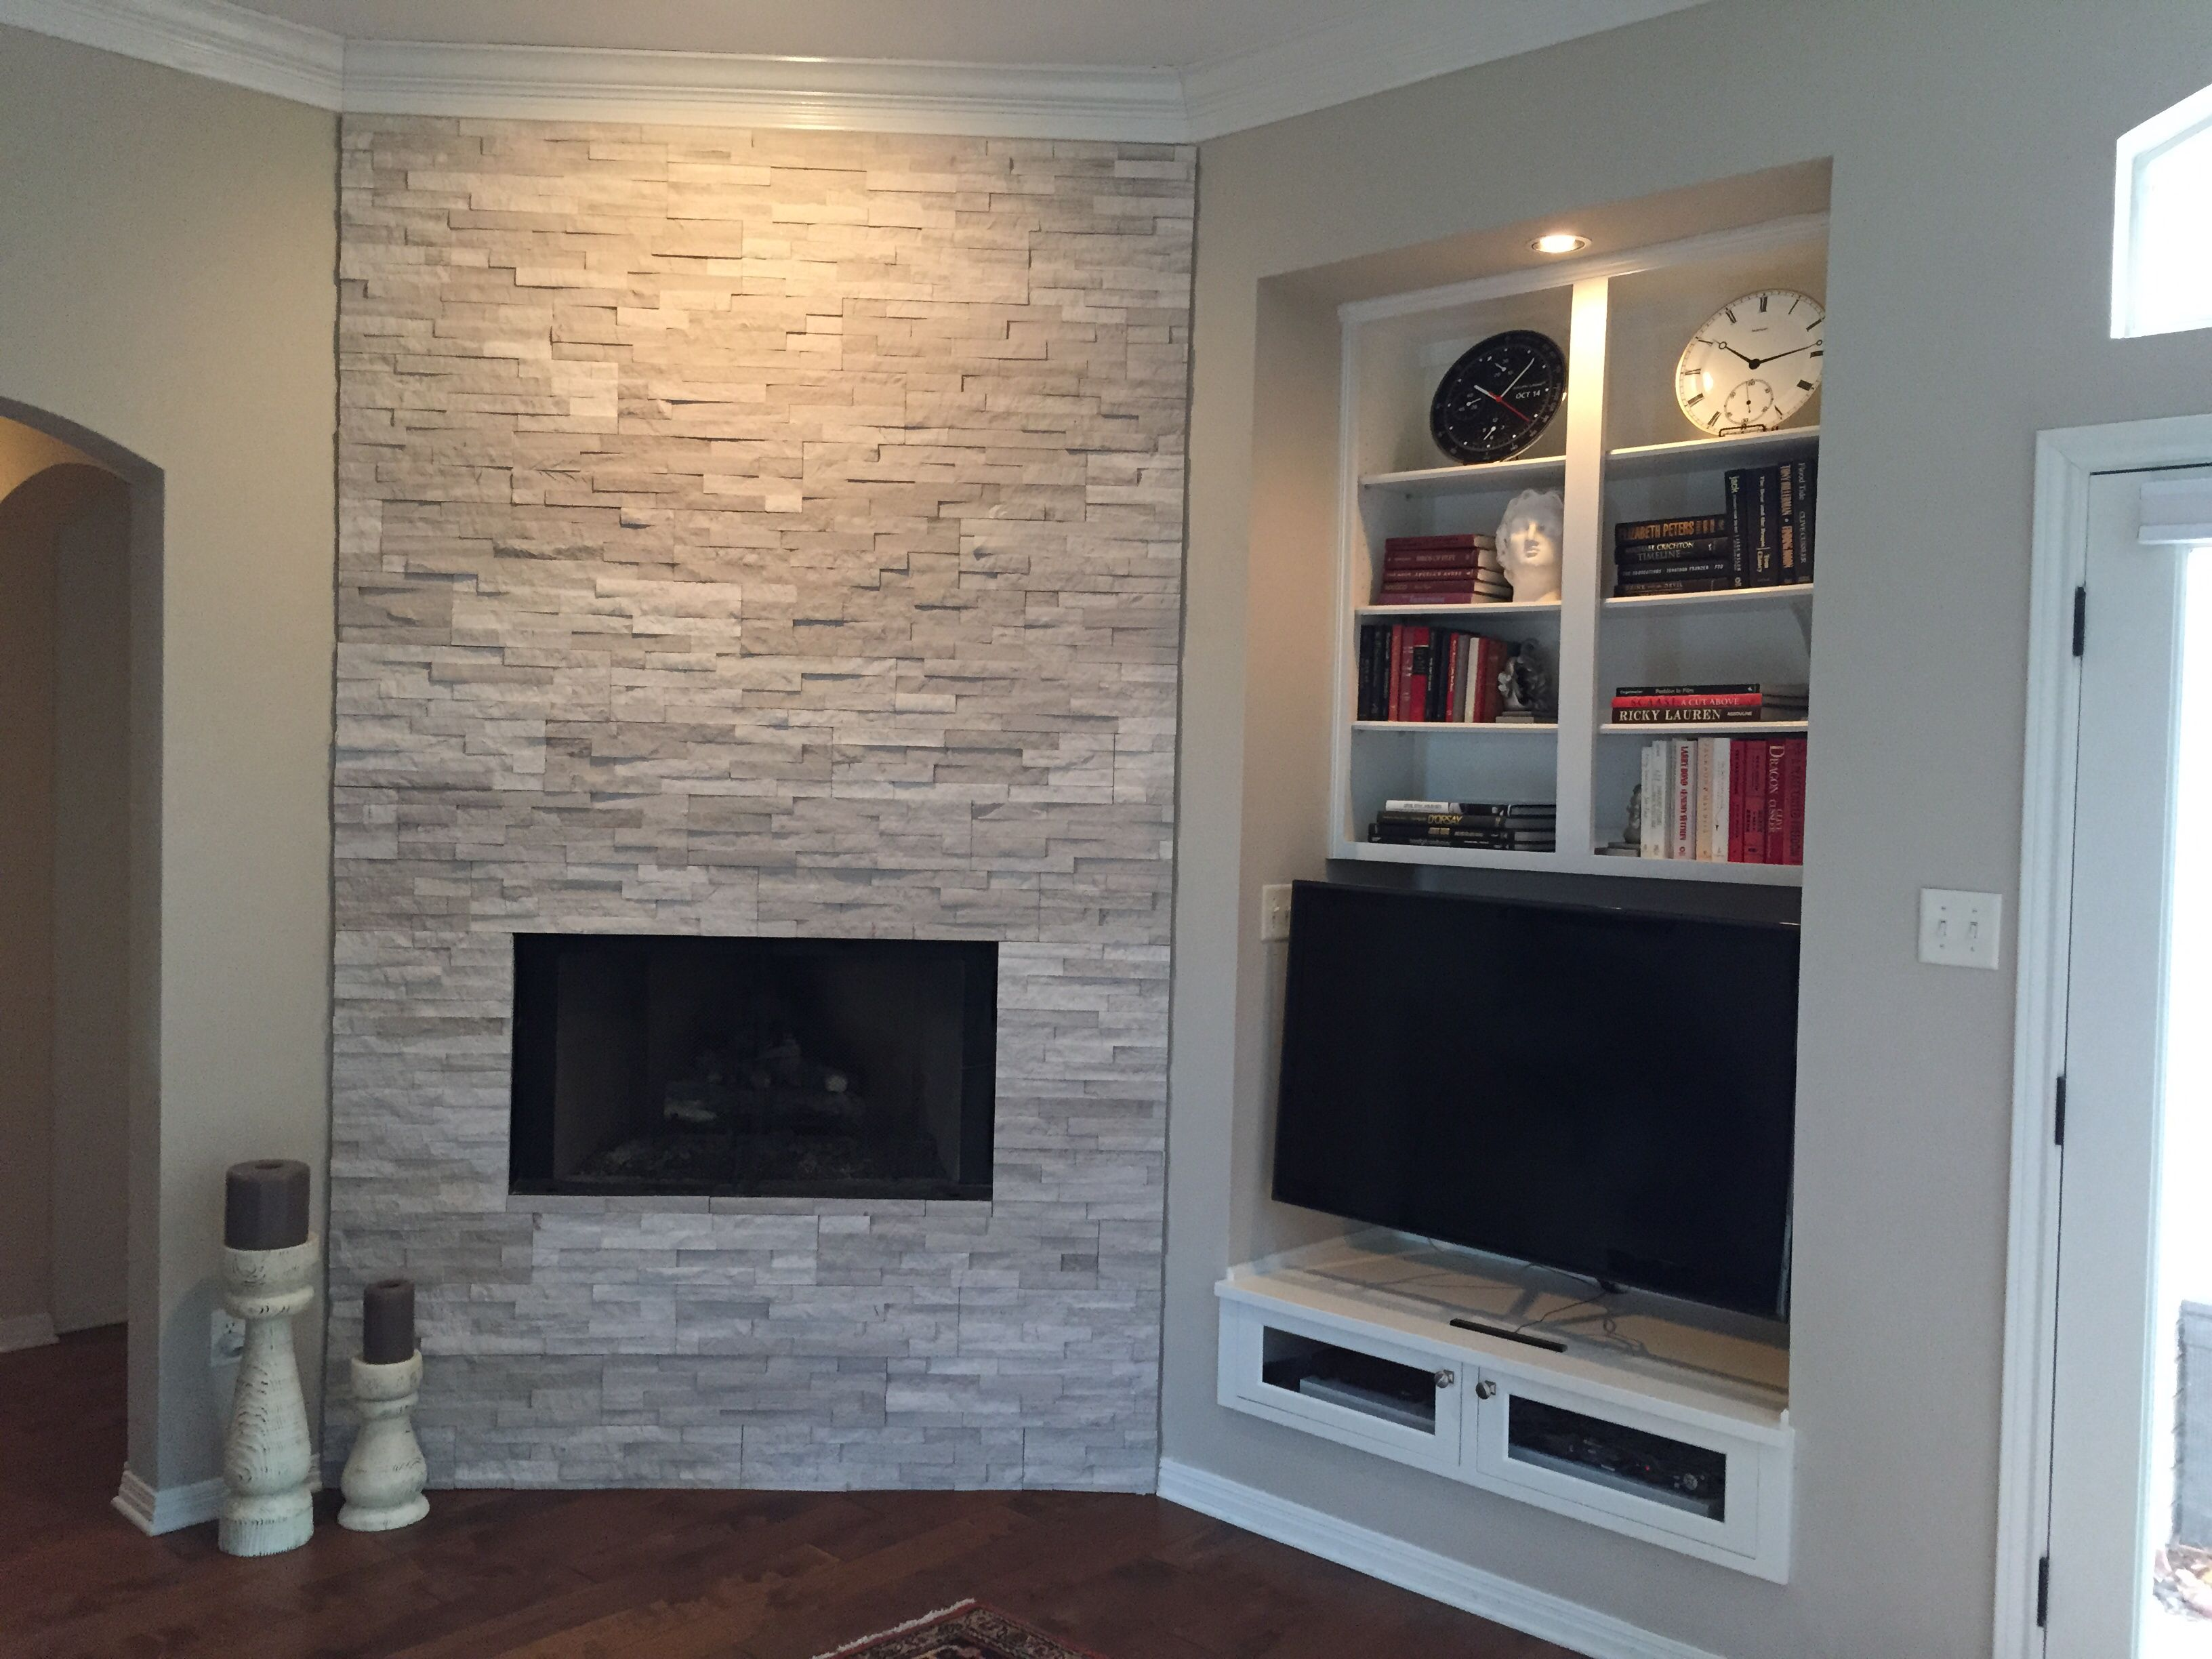 57 best fireplaces images on Pinterest | Stone fireplaces ...